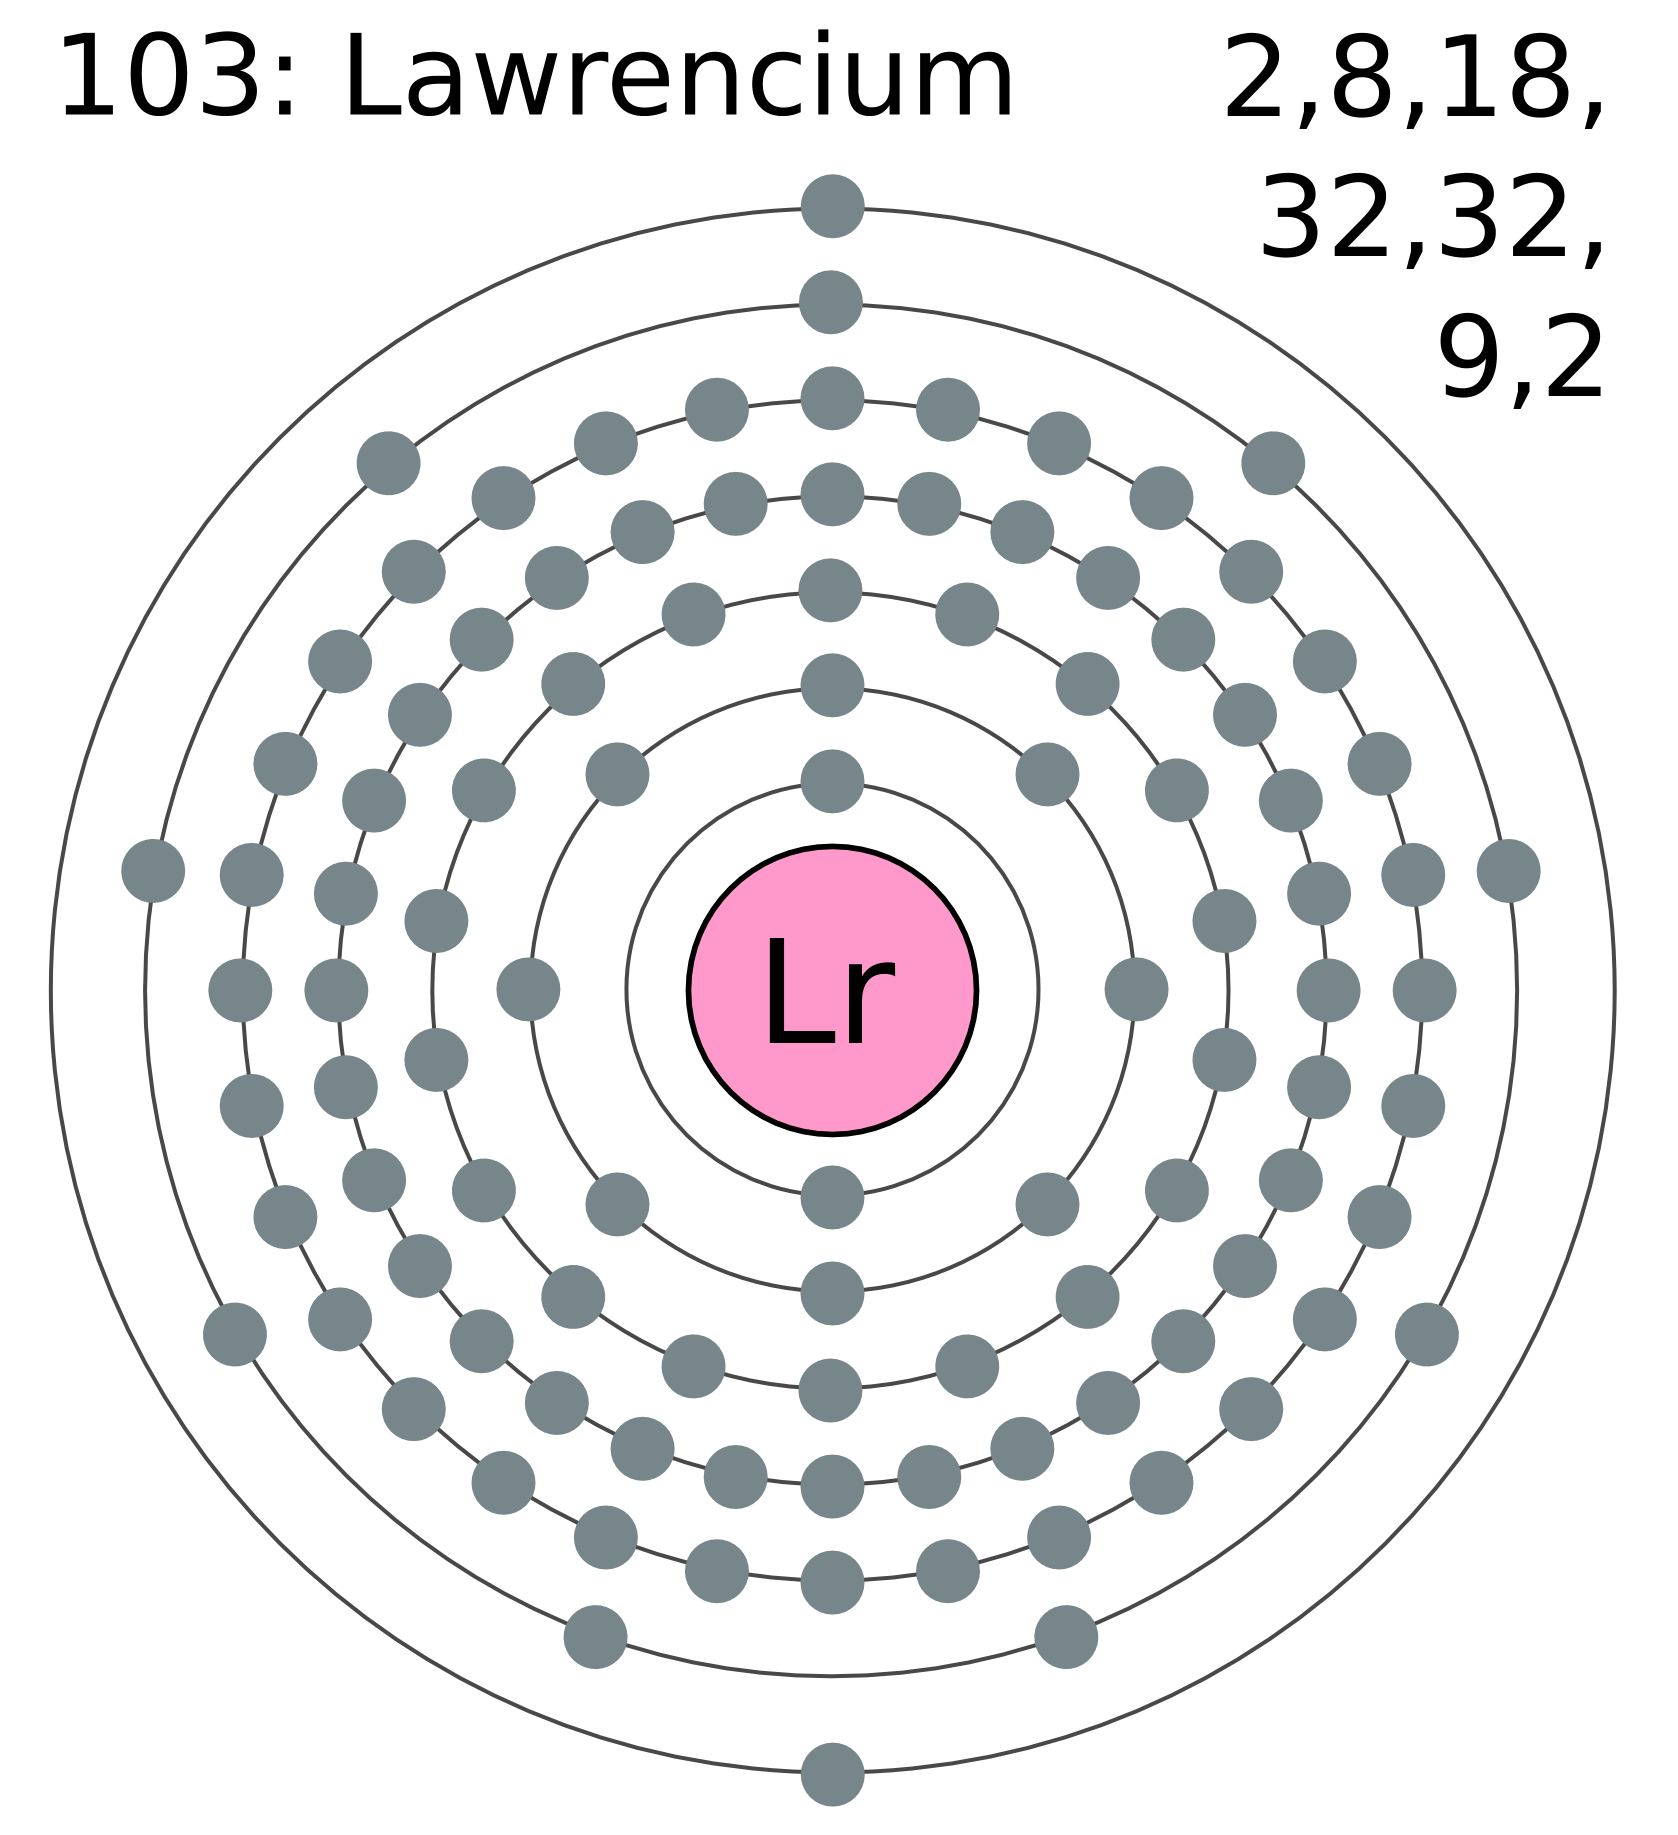 a study on the element lawrencium Lawrencium is a radioactive element, wholly synthesized from other elements it is the last element found in the actinide series, and is also the heaviest.